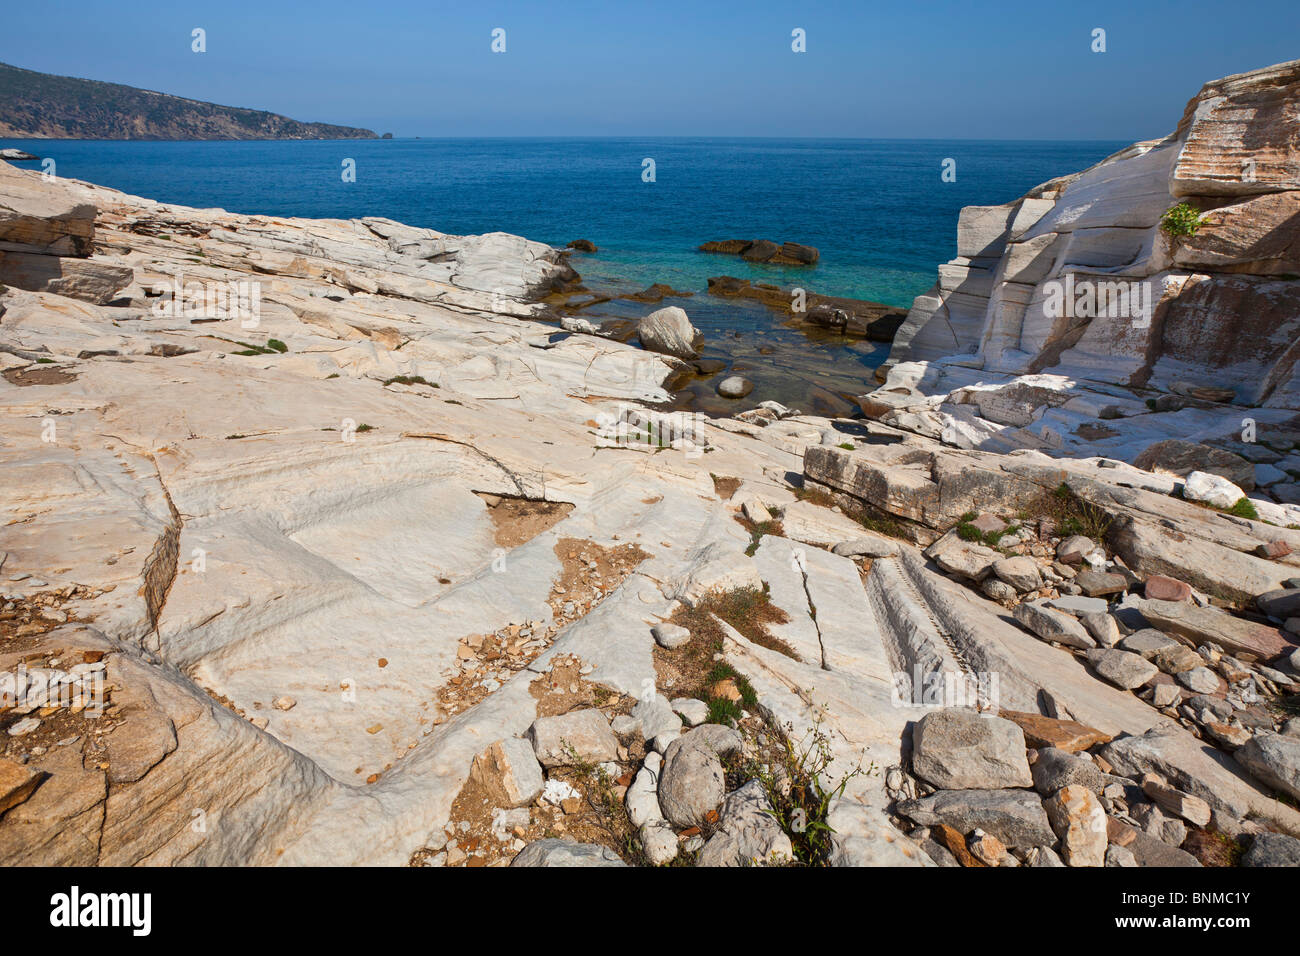 Cuttings visible in an ancient marble quarry on the island of Thasos, Greece. - Stock Image